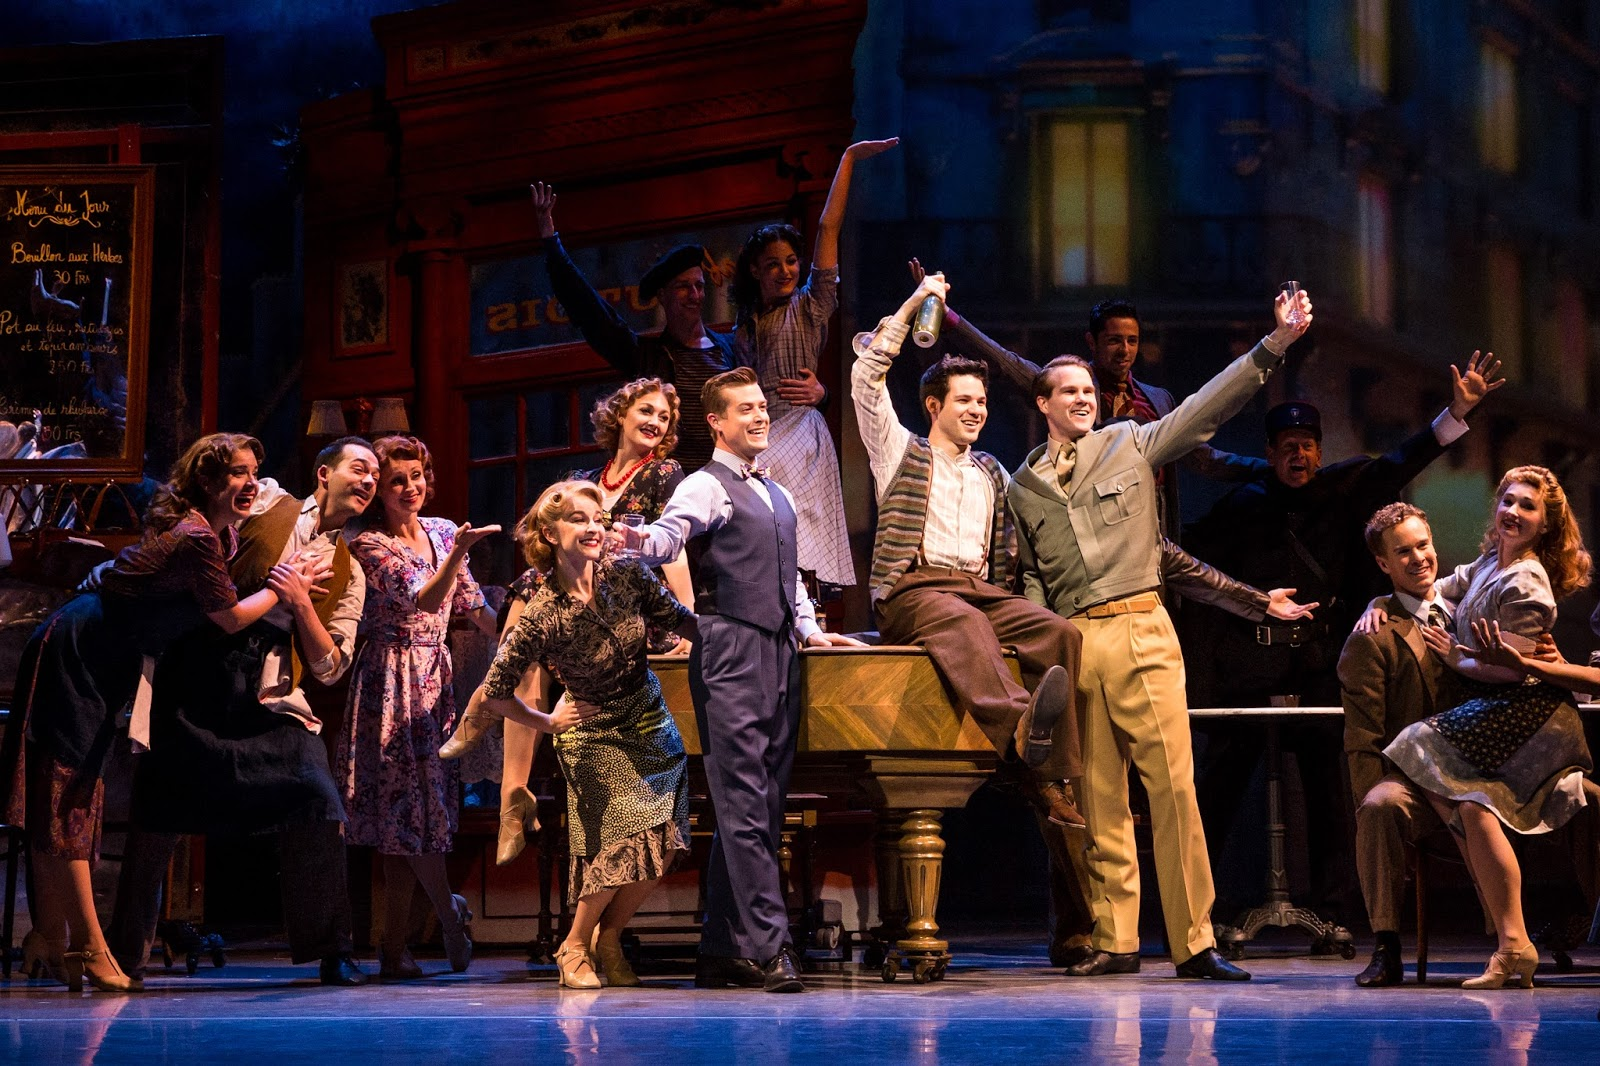 ChiIL Mama : REVIEW: American in Paris Charms With Iconic